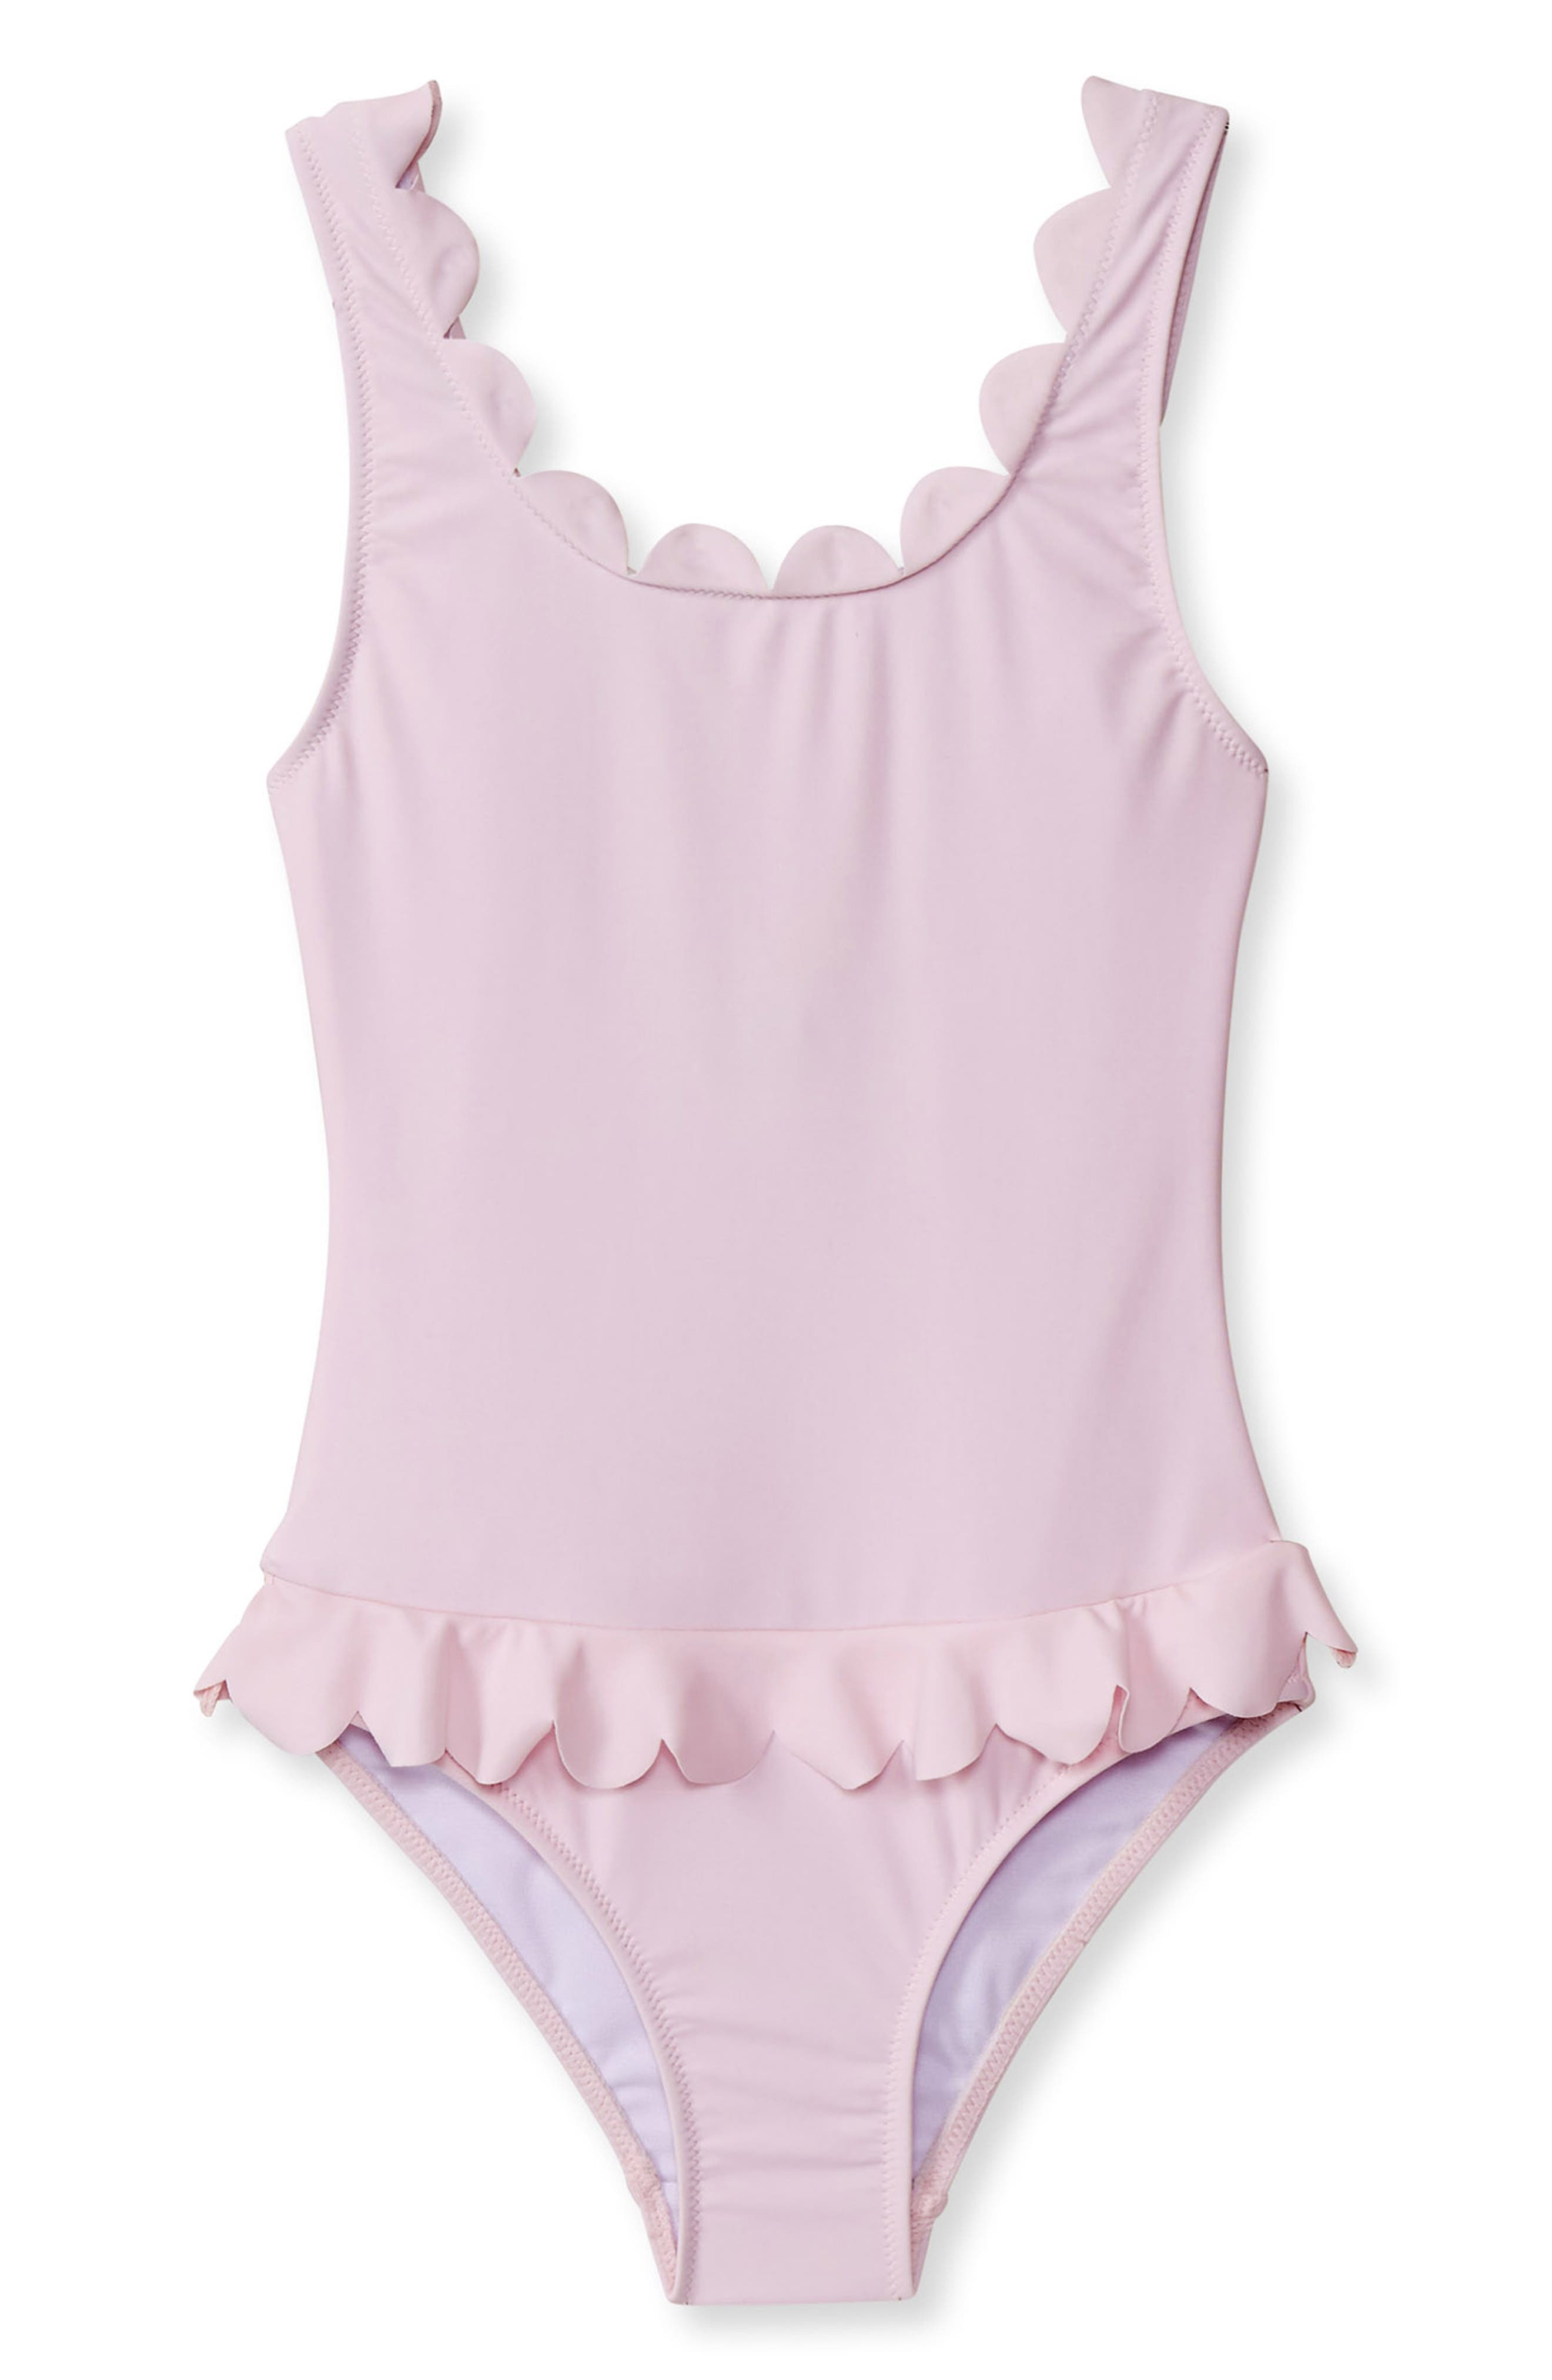 STELLA COVE, Scalloped One-Piece Swimsuit, Main thumbnail 1, color, PINK